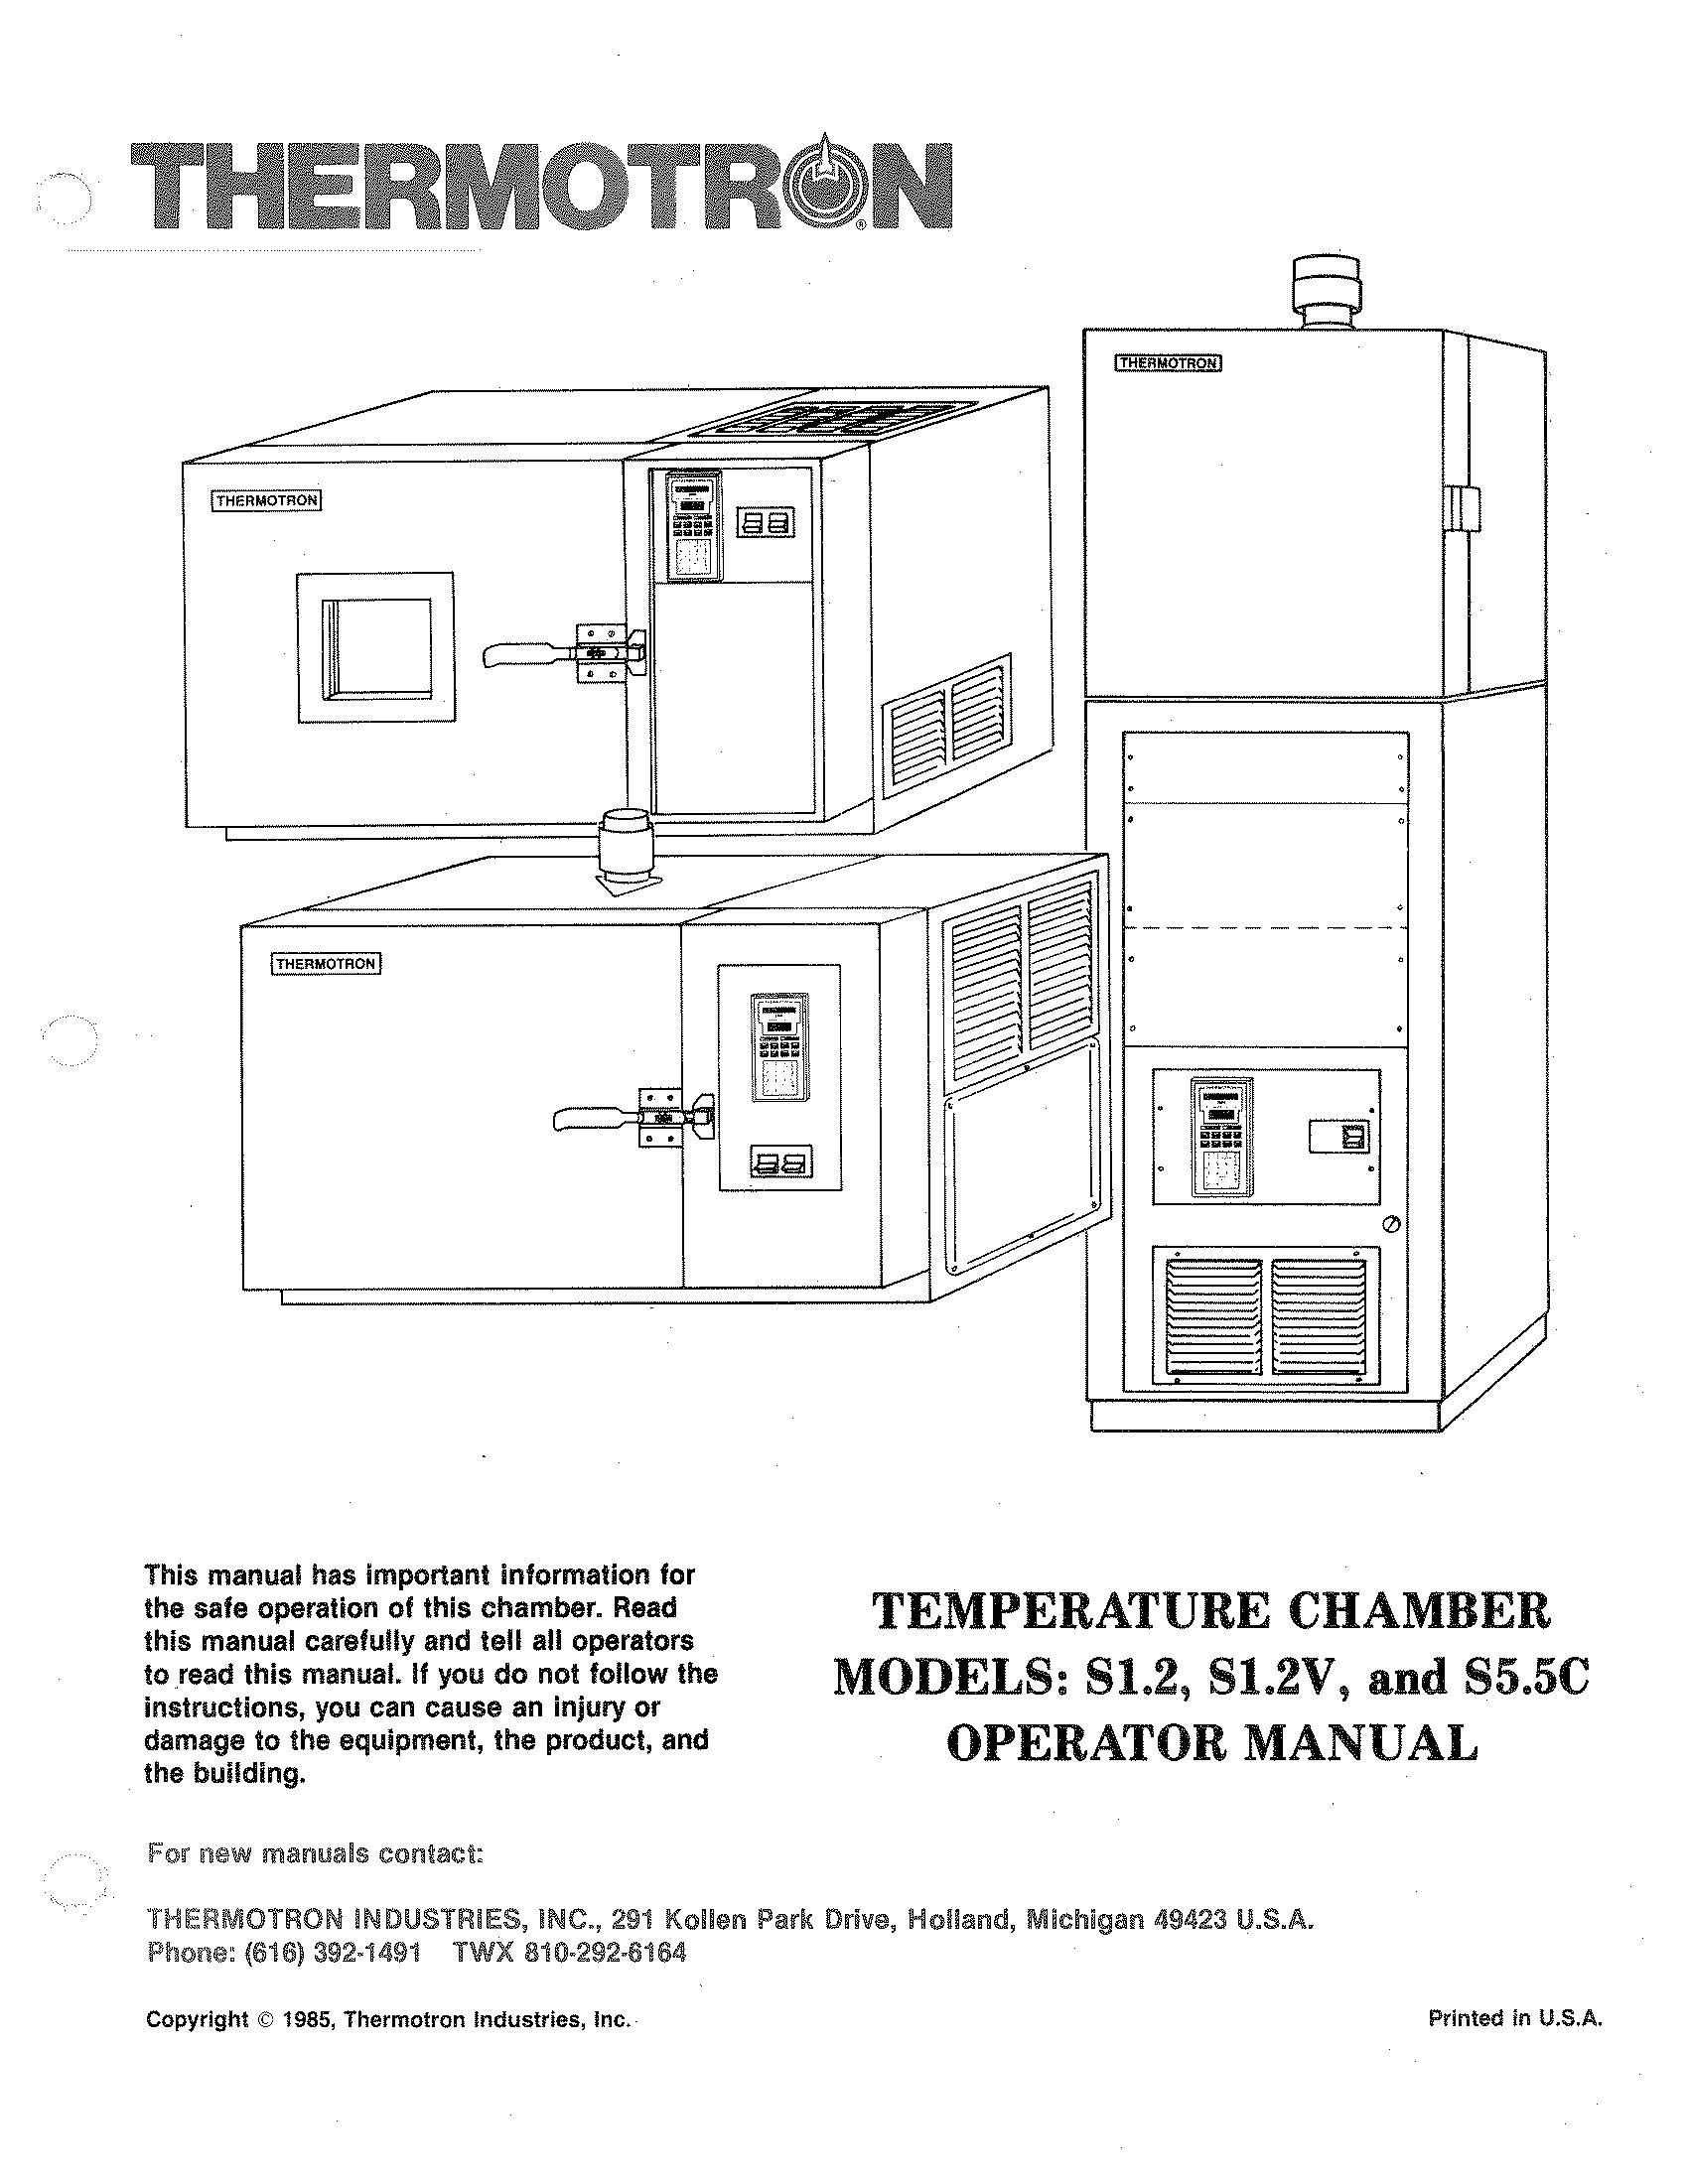 Thermotron temperature chamber models s1. 2, s1. 2v,s5. 5c controller.